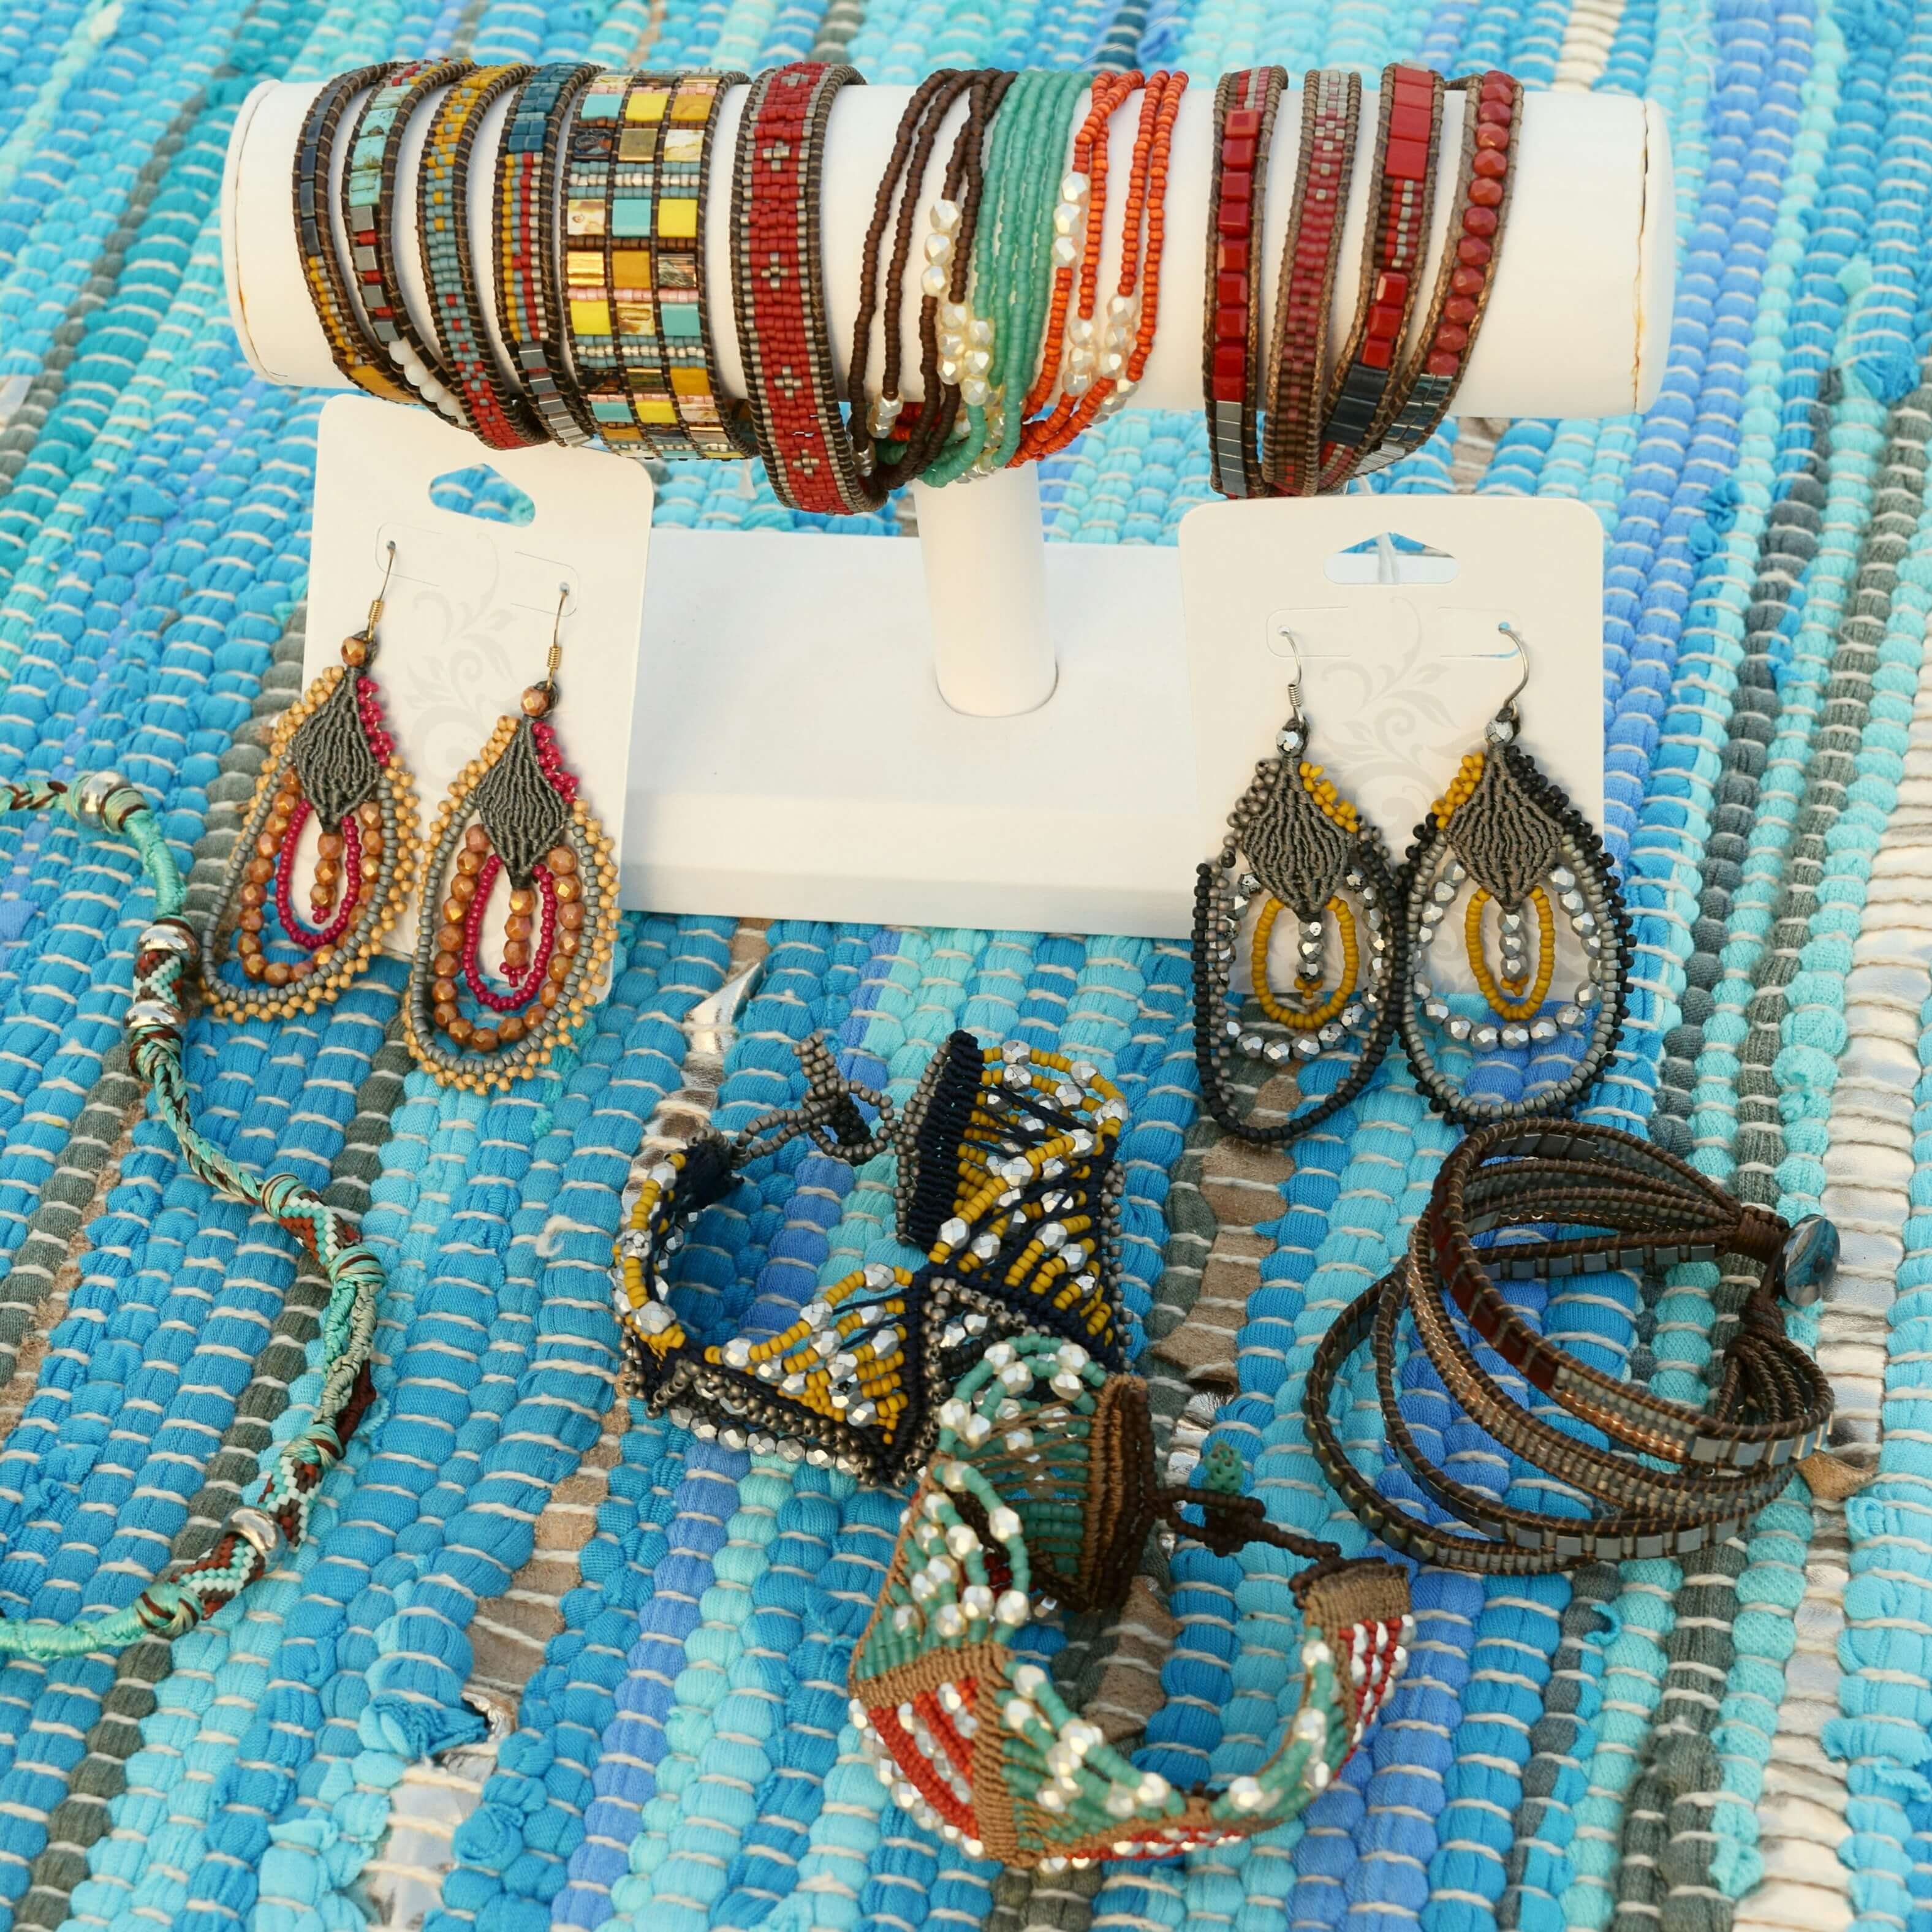 Accessories at On The Bay Customs